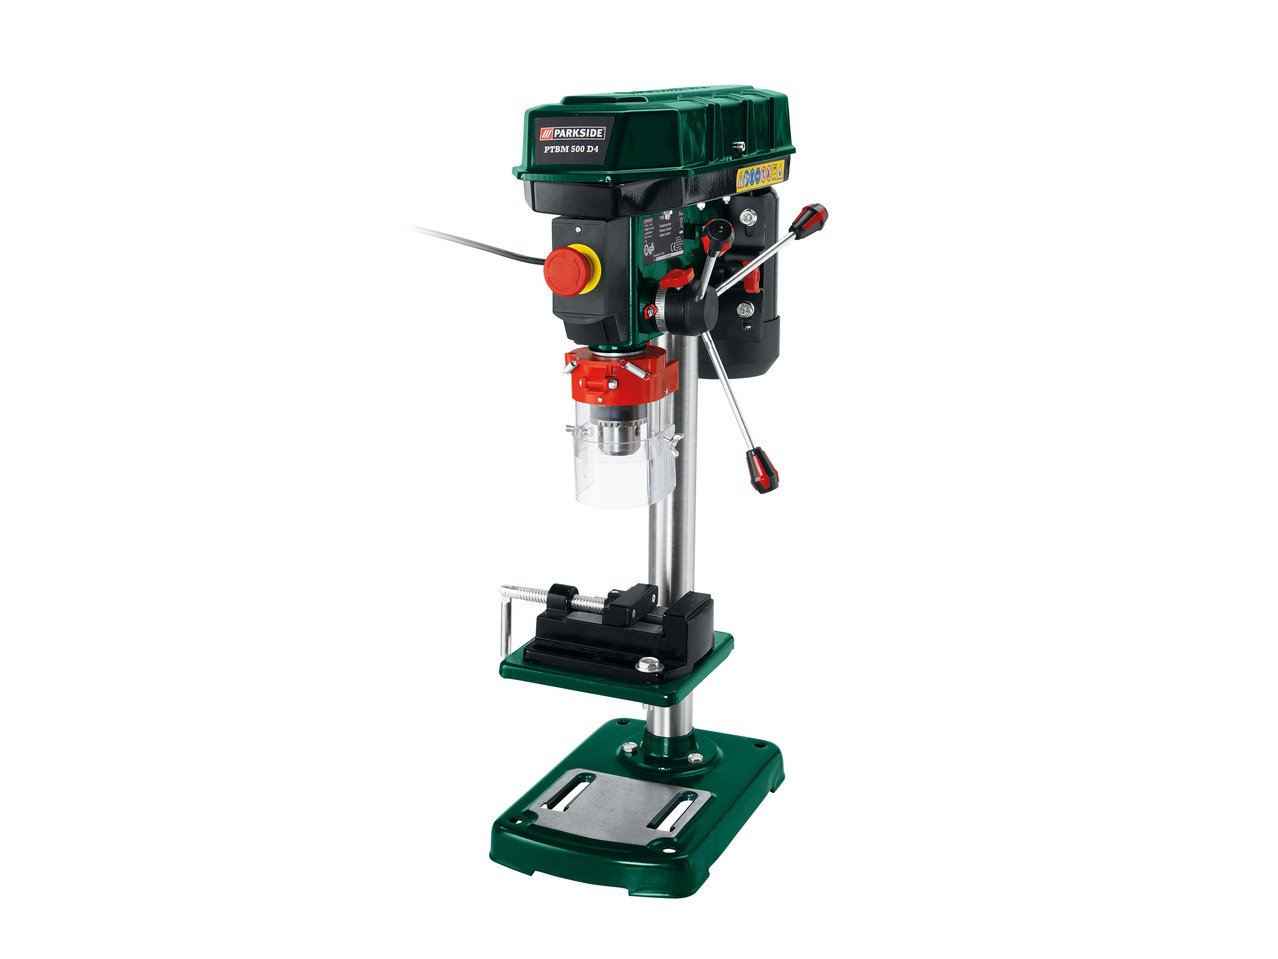 Parkside Bench Pillar Drill Ptbm 500 D4 With Angle Adjustment On Both Sides And A Graduated Scale 9 Speed Gearbox Speed 500 2500rpm Adjustable